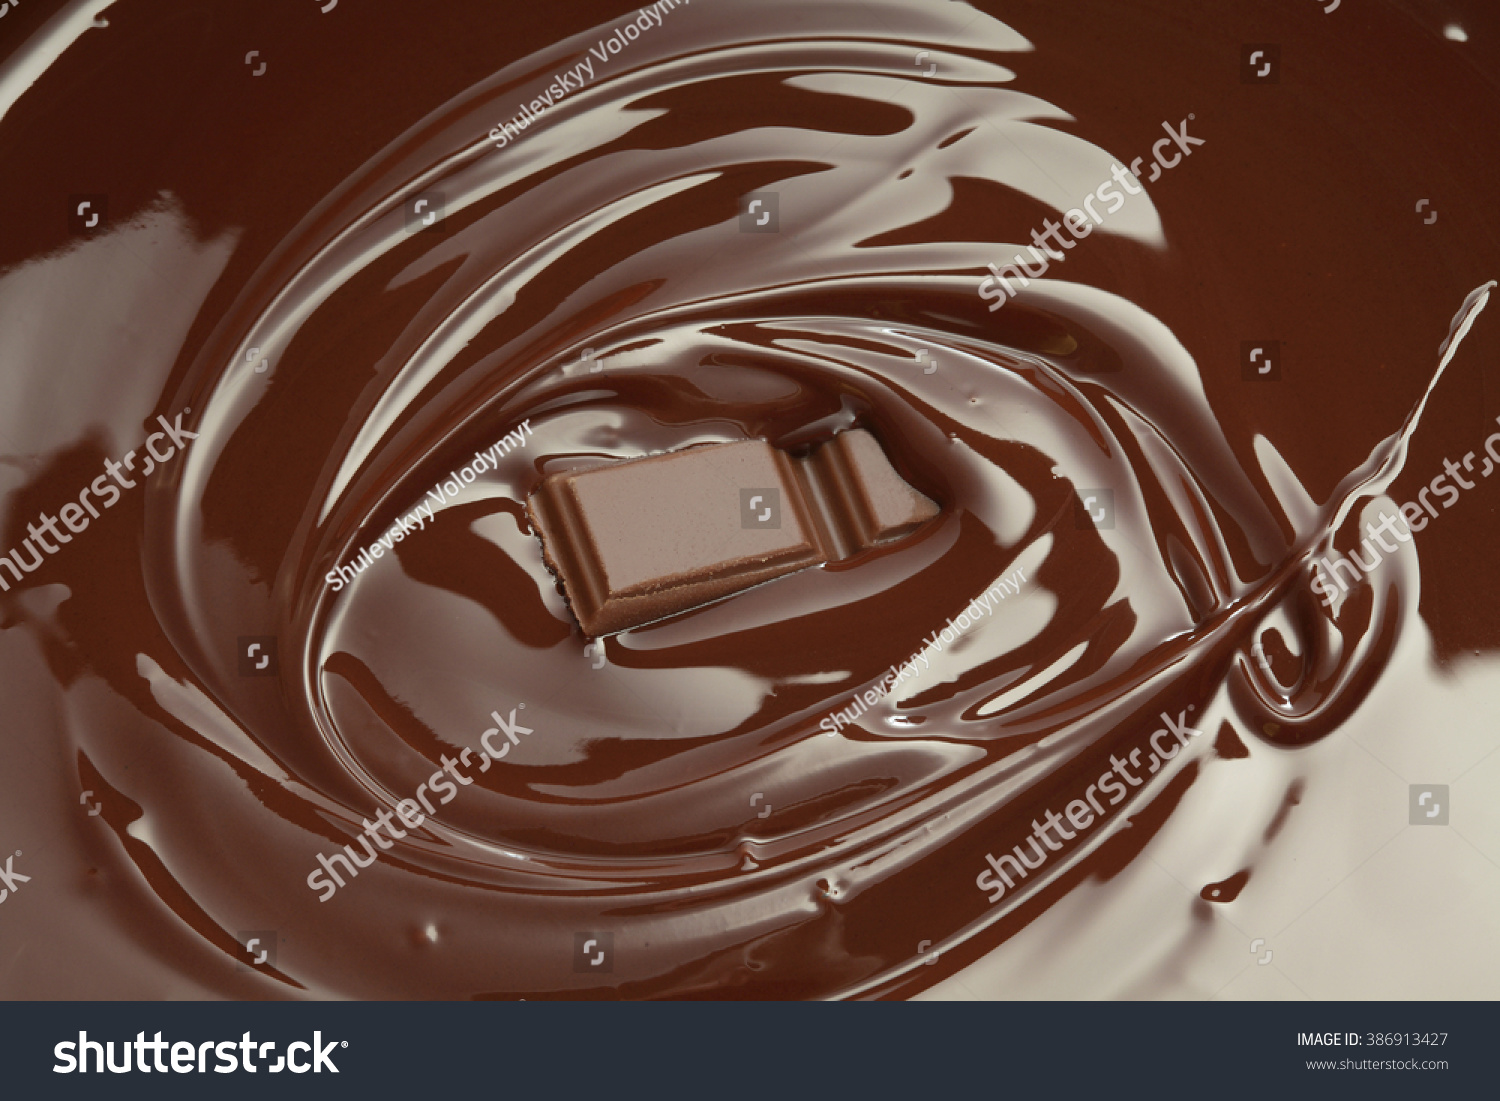 melted chocolate swirl chocolate bar piece stock photo